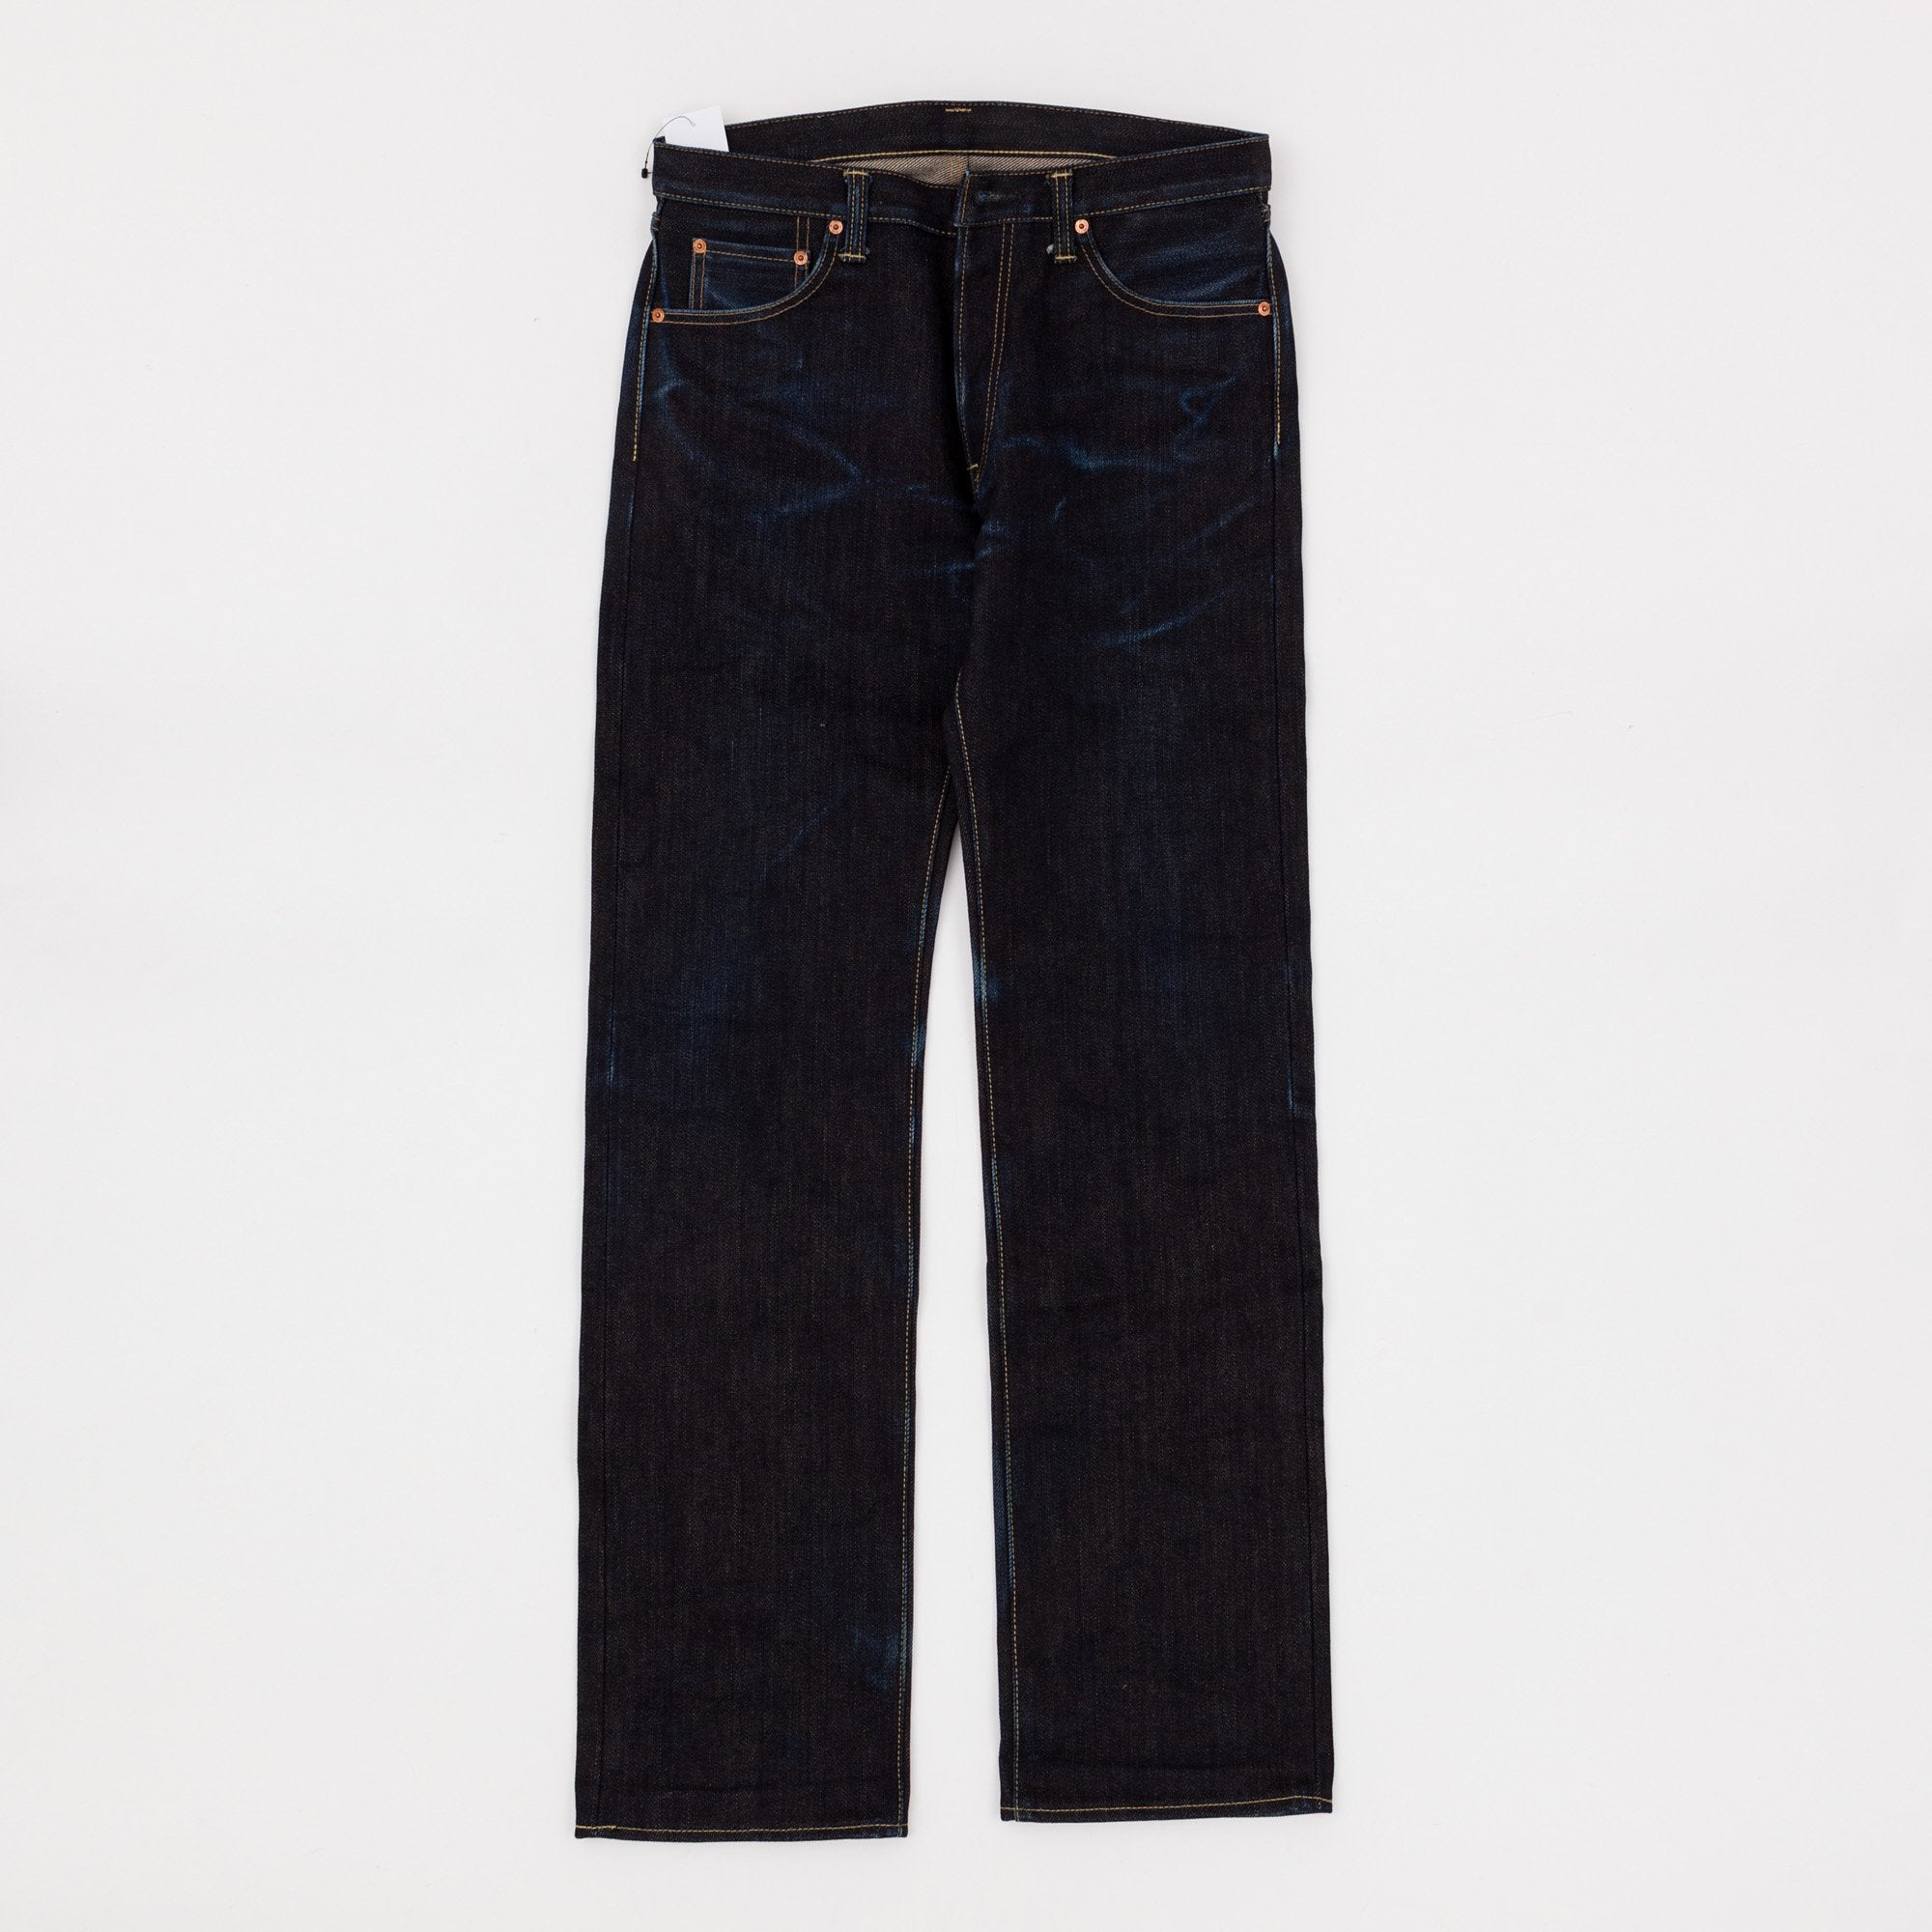 Iron Heart Lot.634-XHS 25oz Selvedge Denim